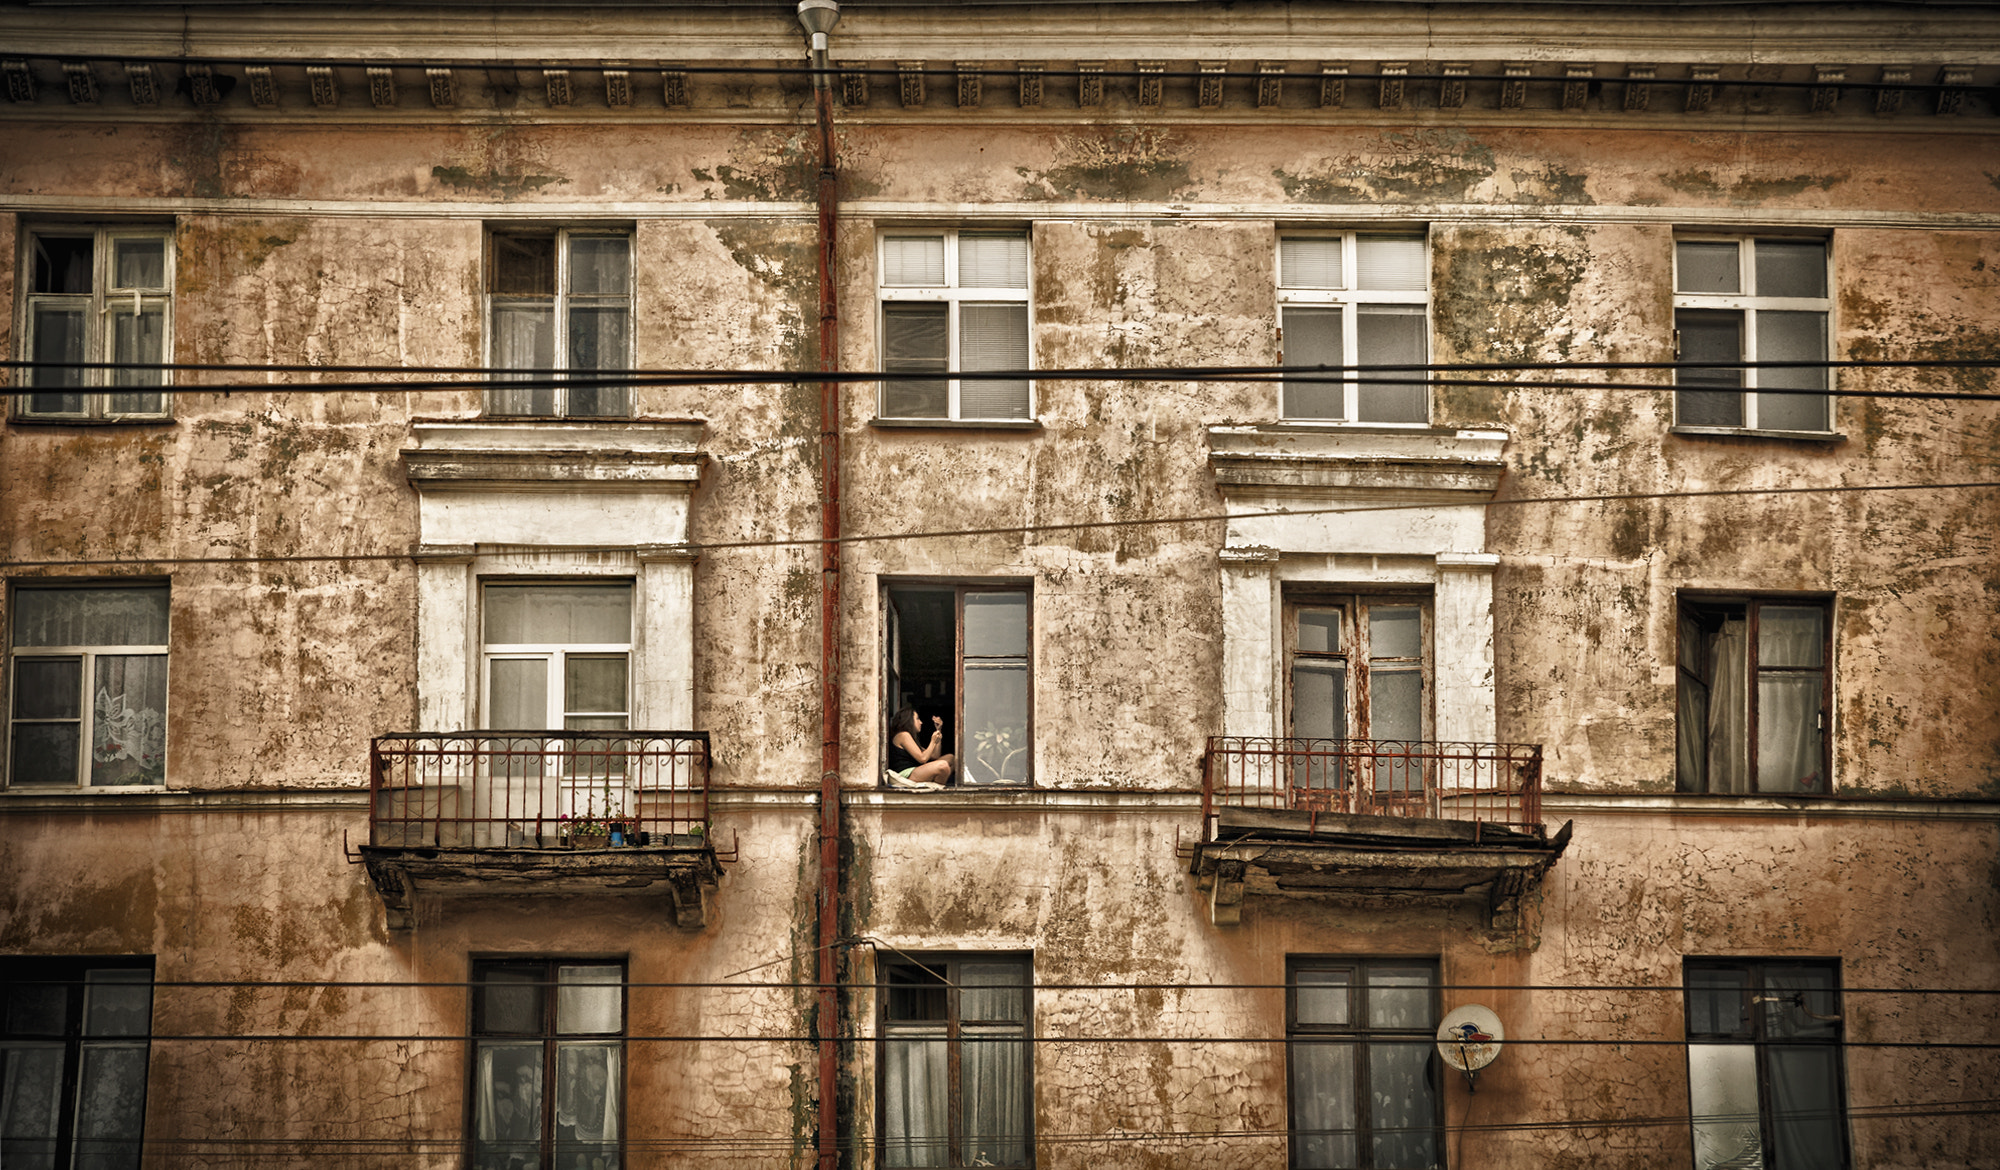 Photograph the girl in the window by Boris Puchkov on 500px